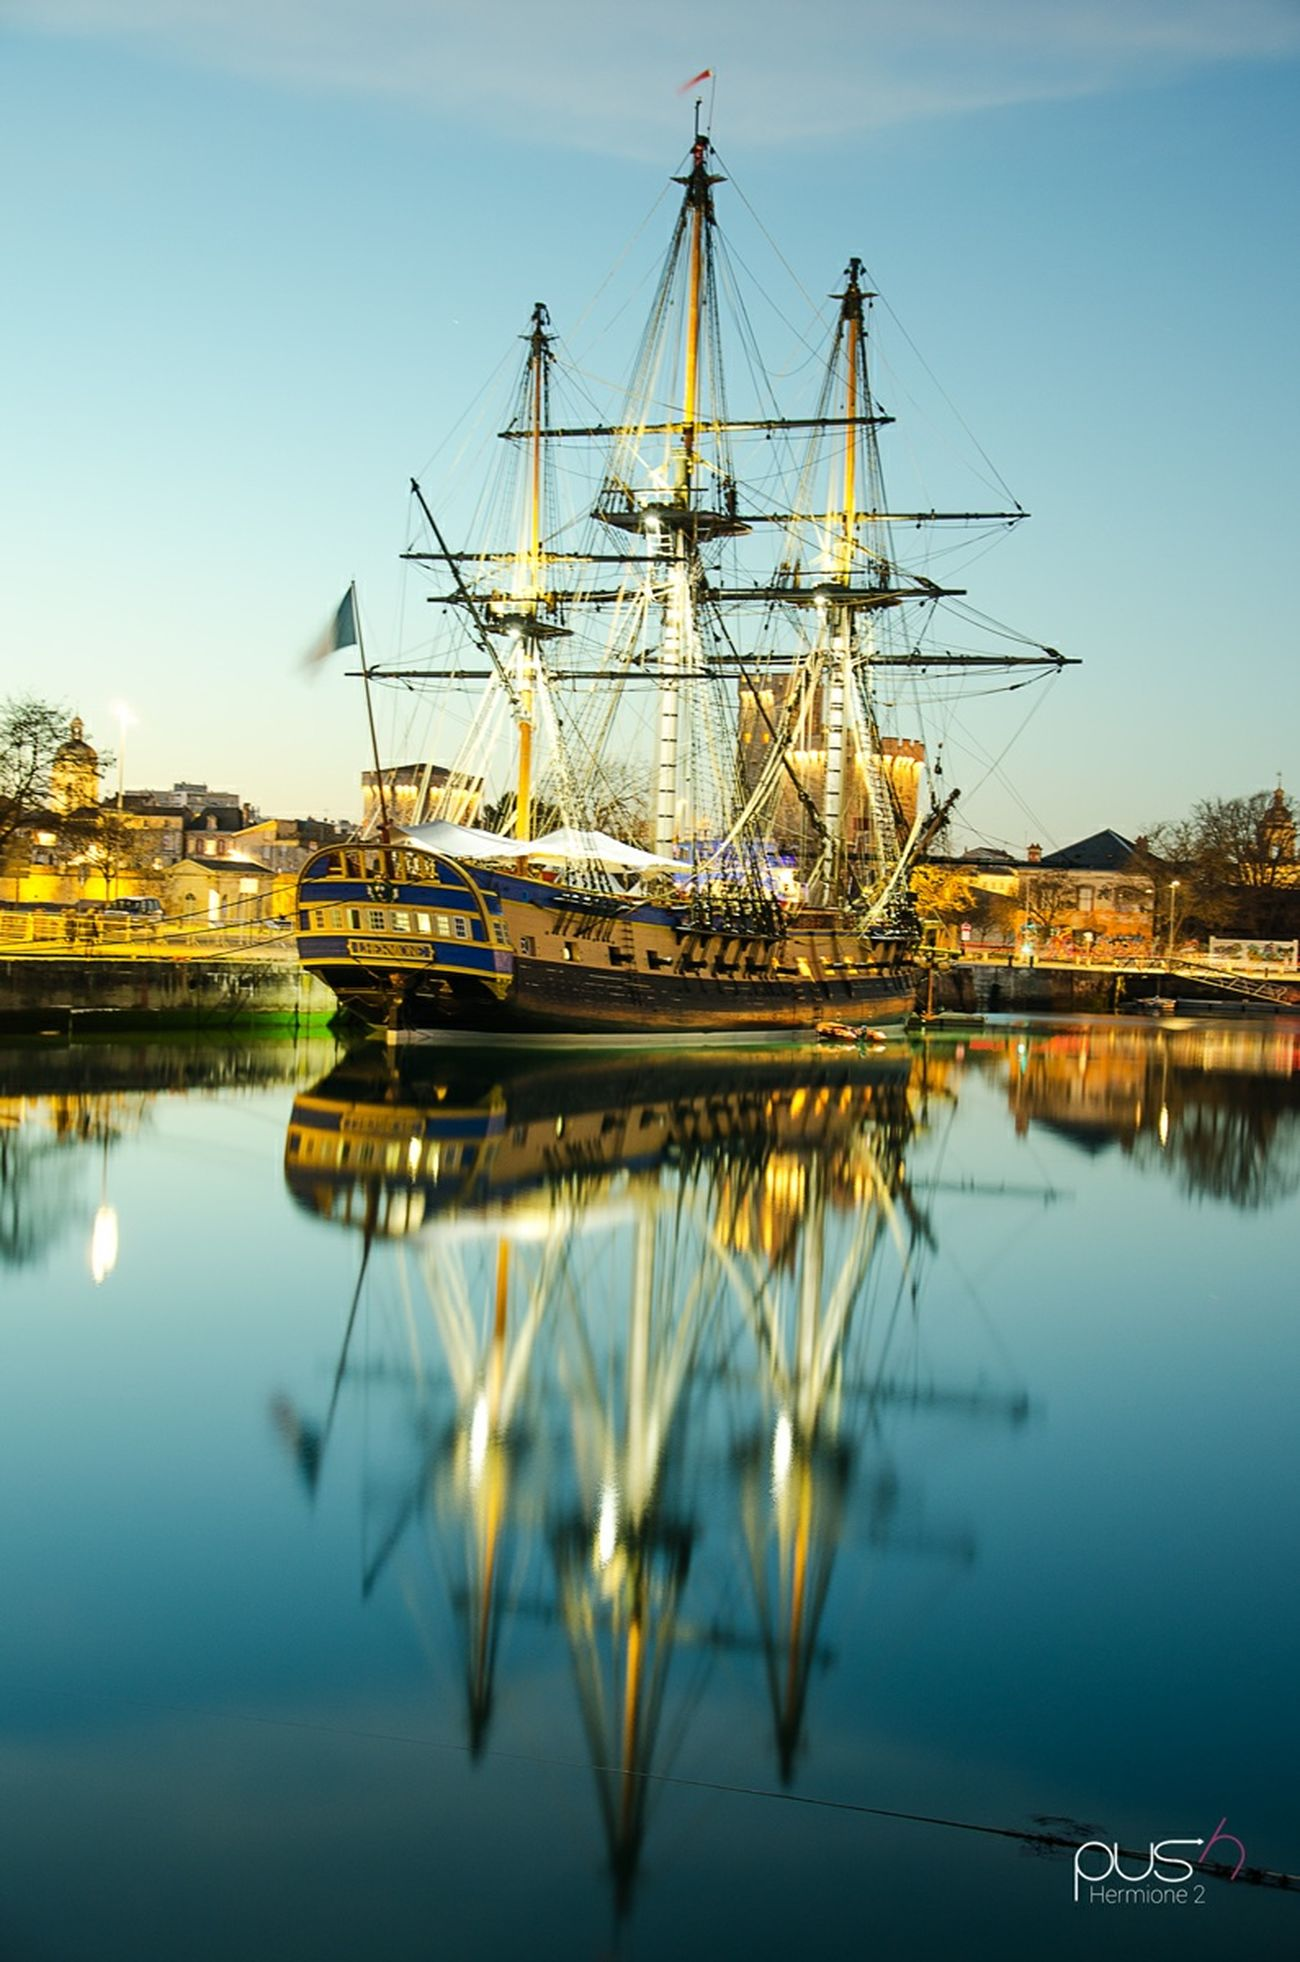 L'hermione à la rochelle Boat Fregate Frigate Hermione Sunset Night Lights Night Photography Bateau Harbor Sea